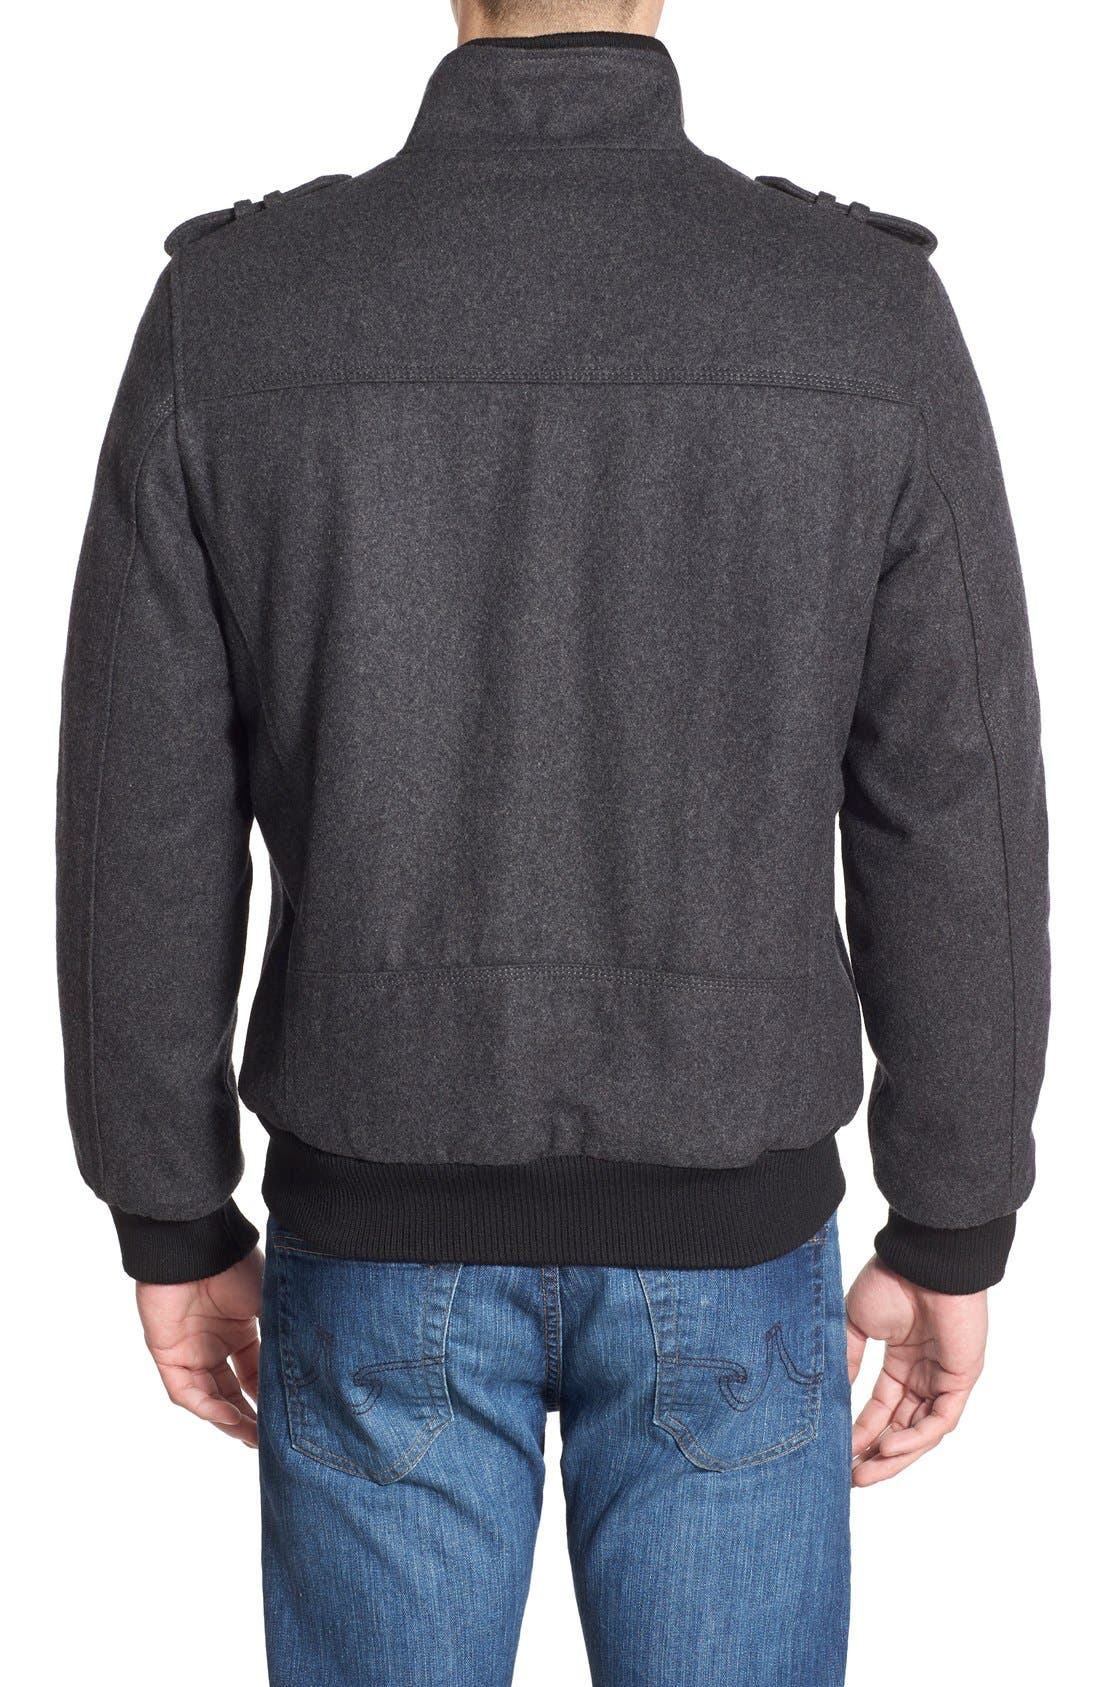 Wool Blend Bomber Jacket,                             Alternate thumbnail 2, color,                             Charcoal